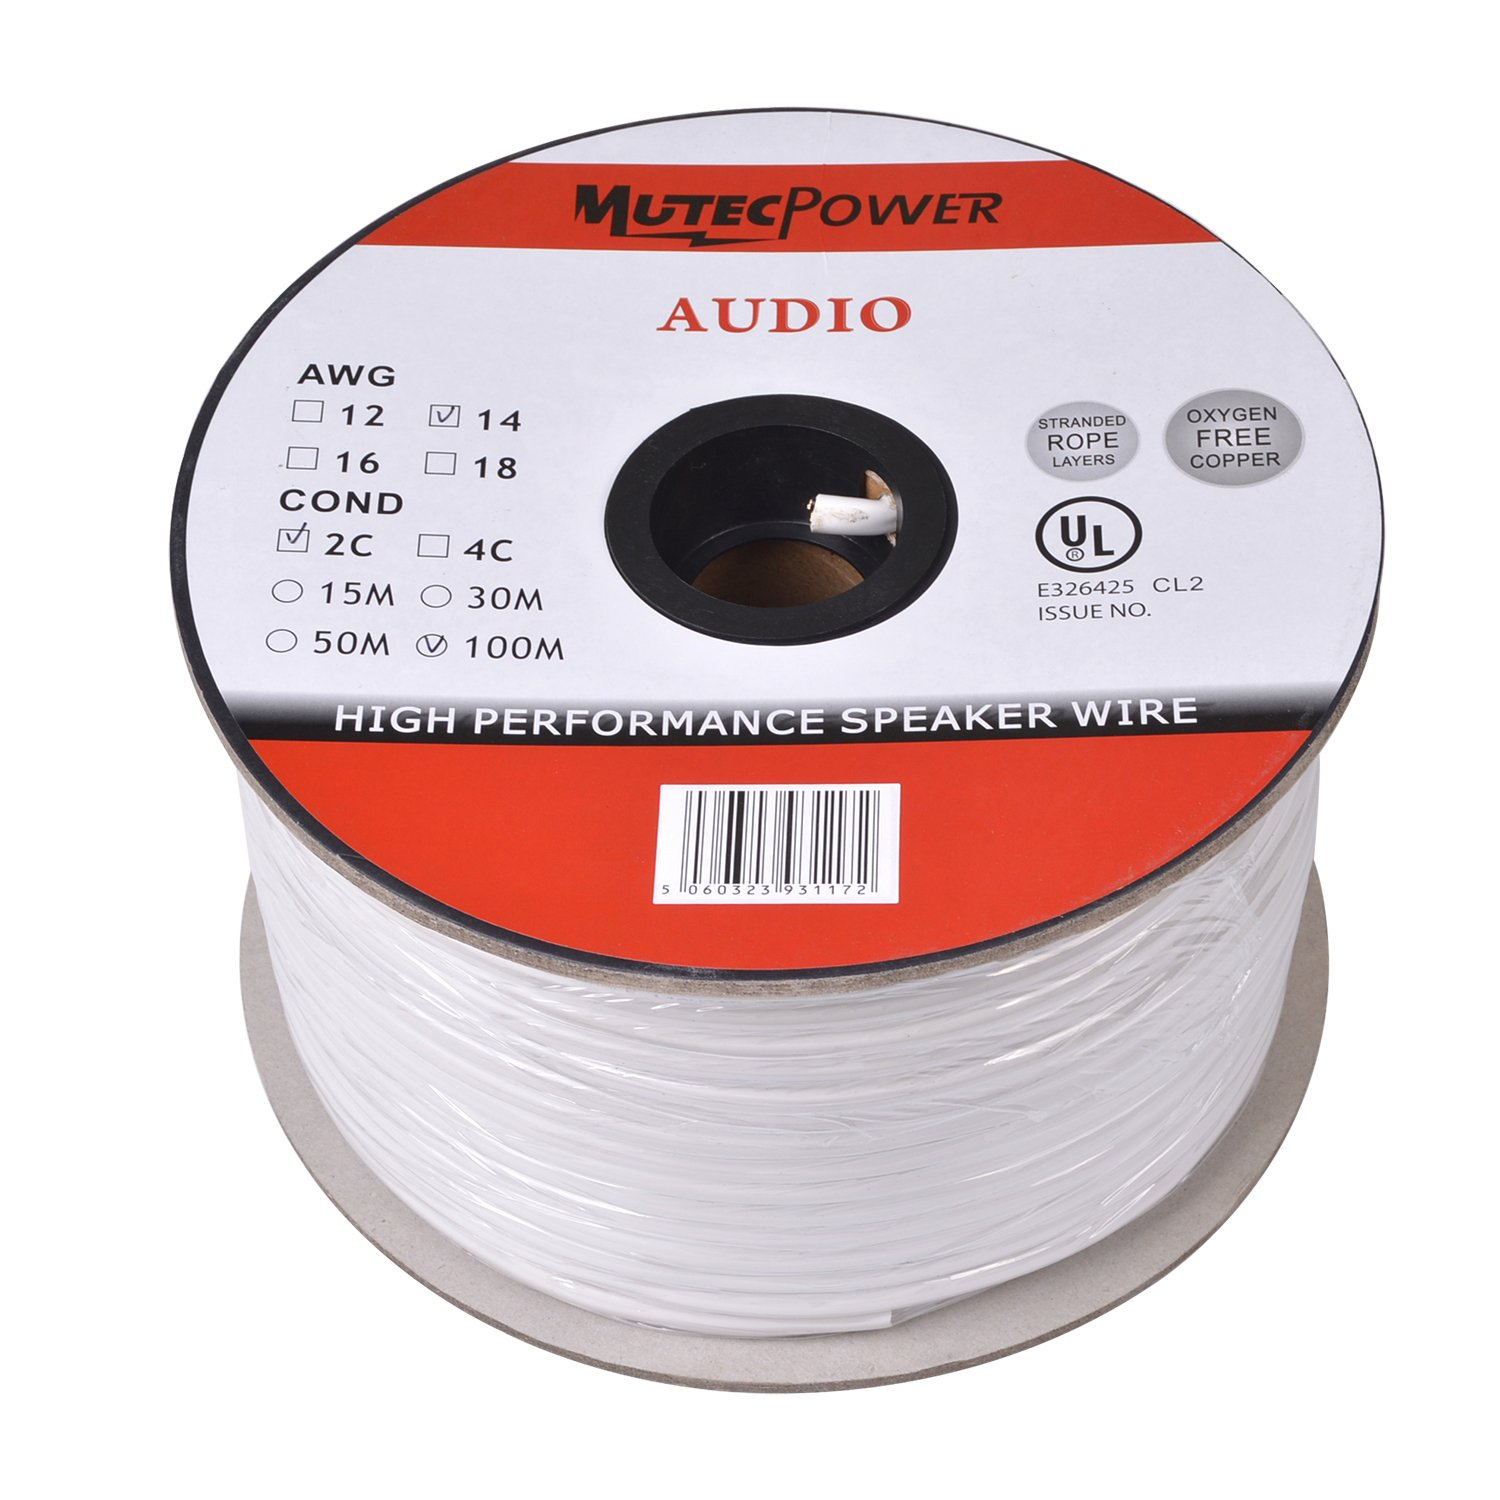 muteccable speaker wire 2 x 15mm 30m cl2 rated ul amazoncouk electronics